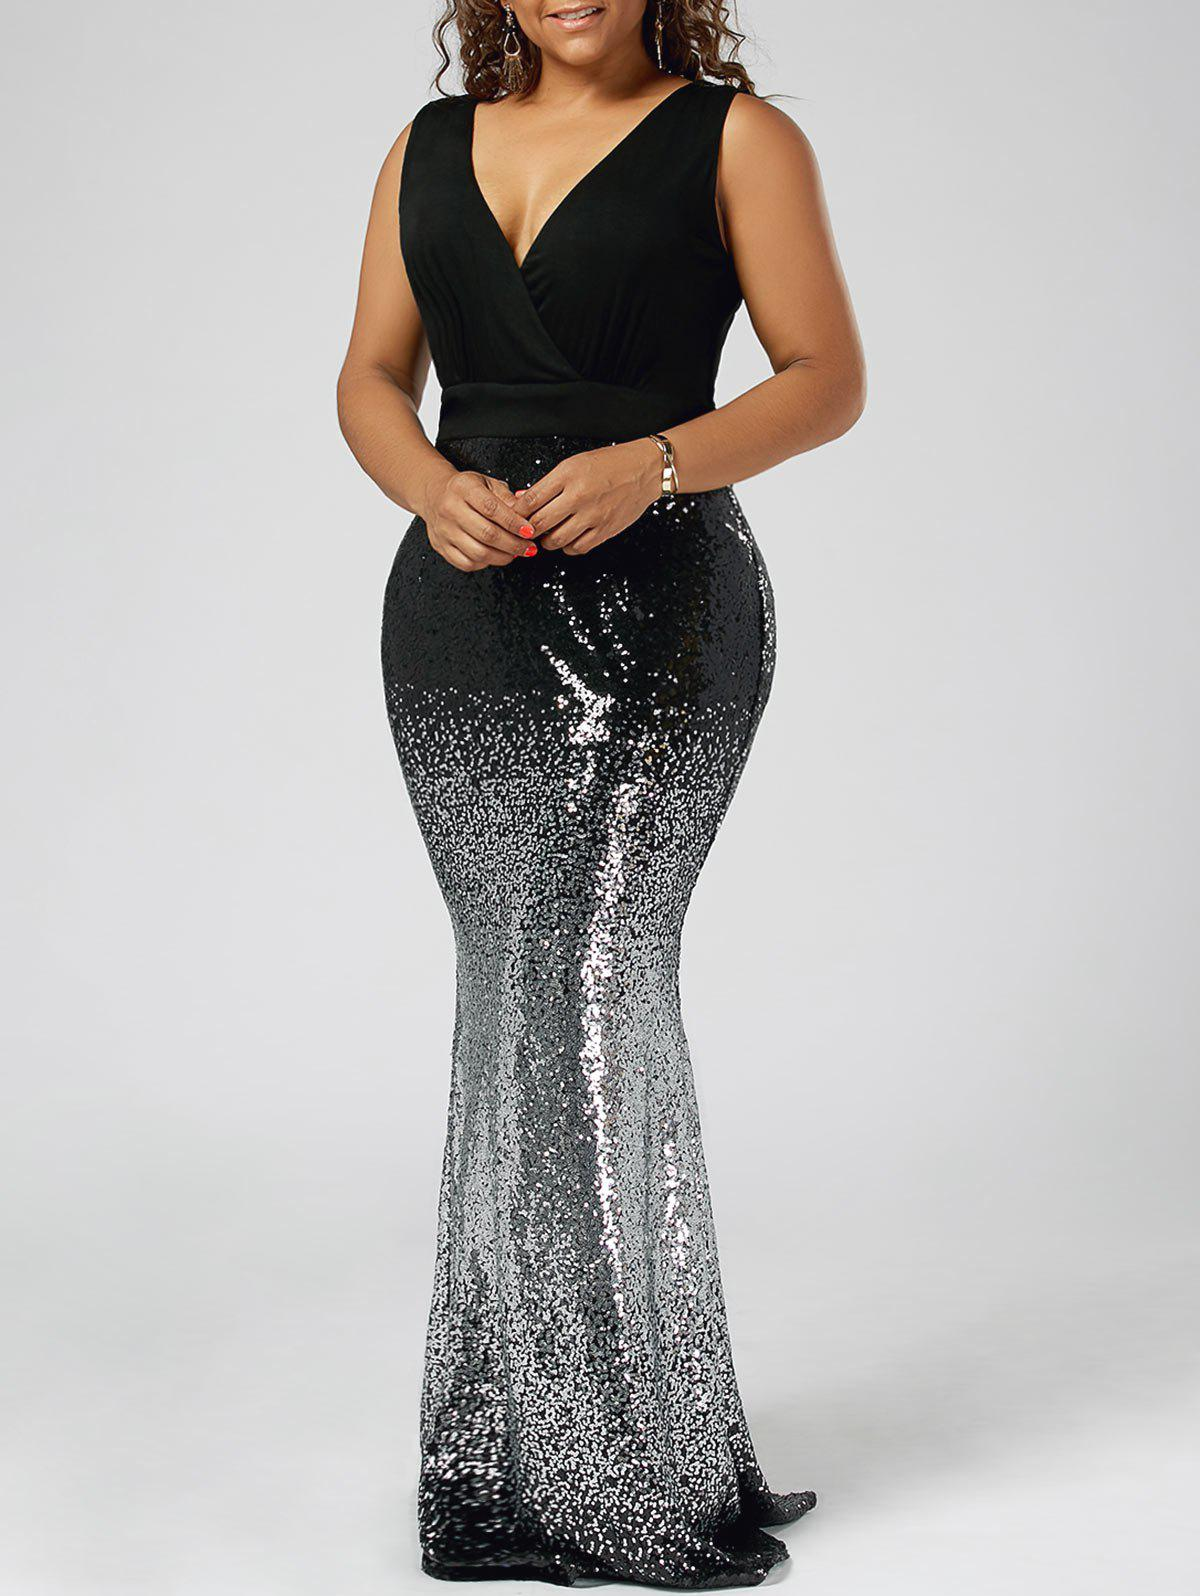 37 Off 2019 Plus Size Sequins Fishtail Maxi Evening Prom Dress